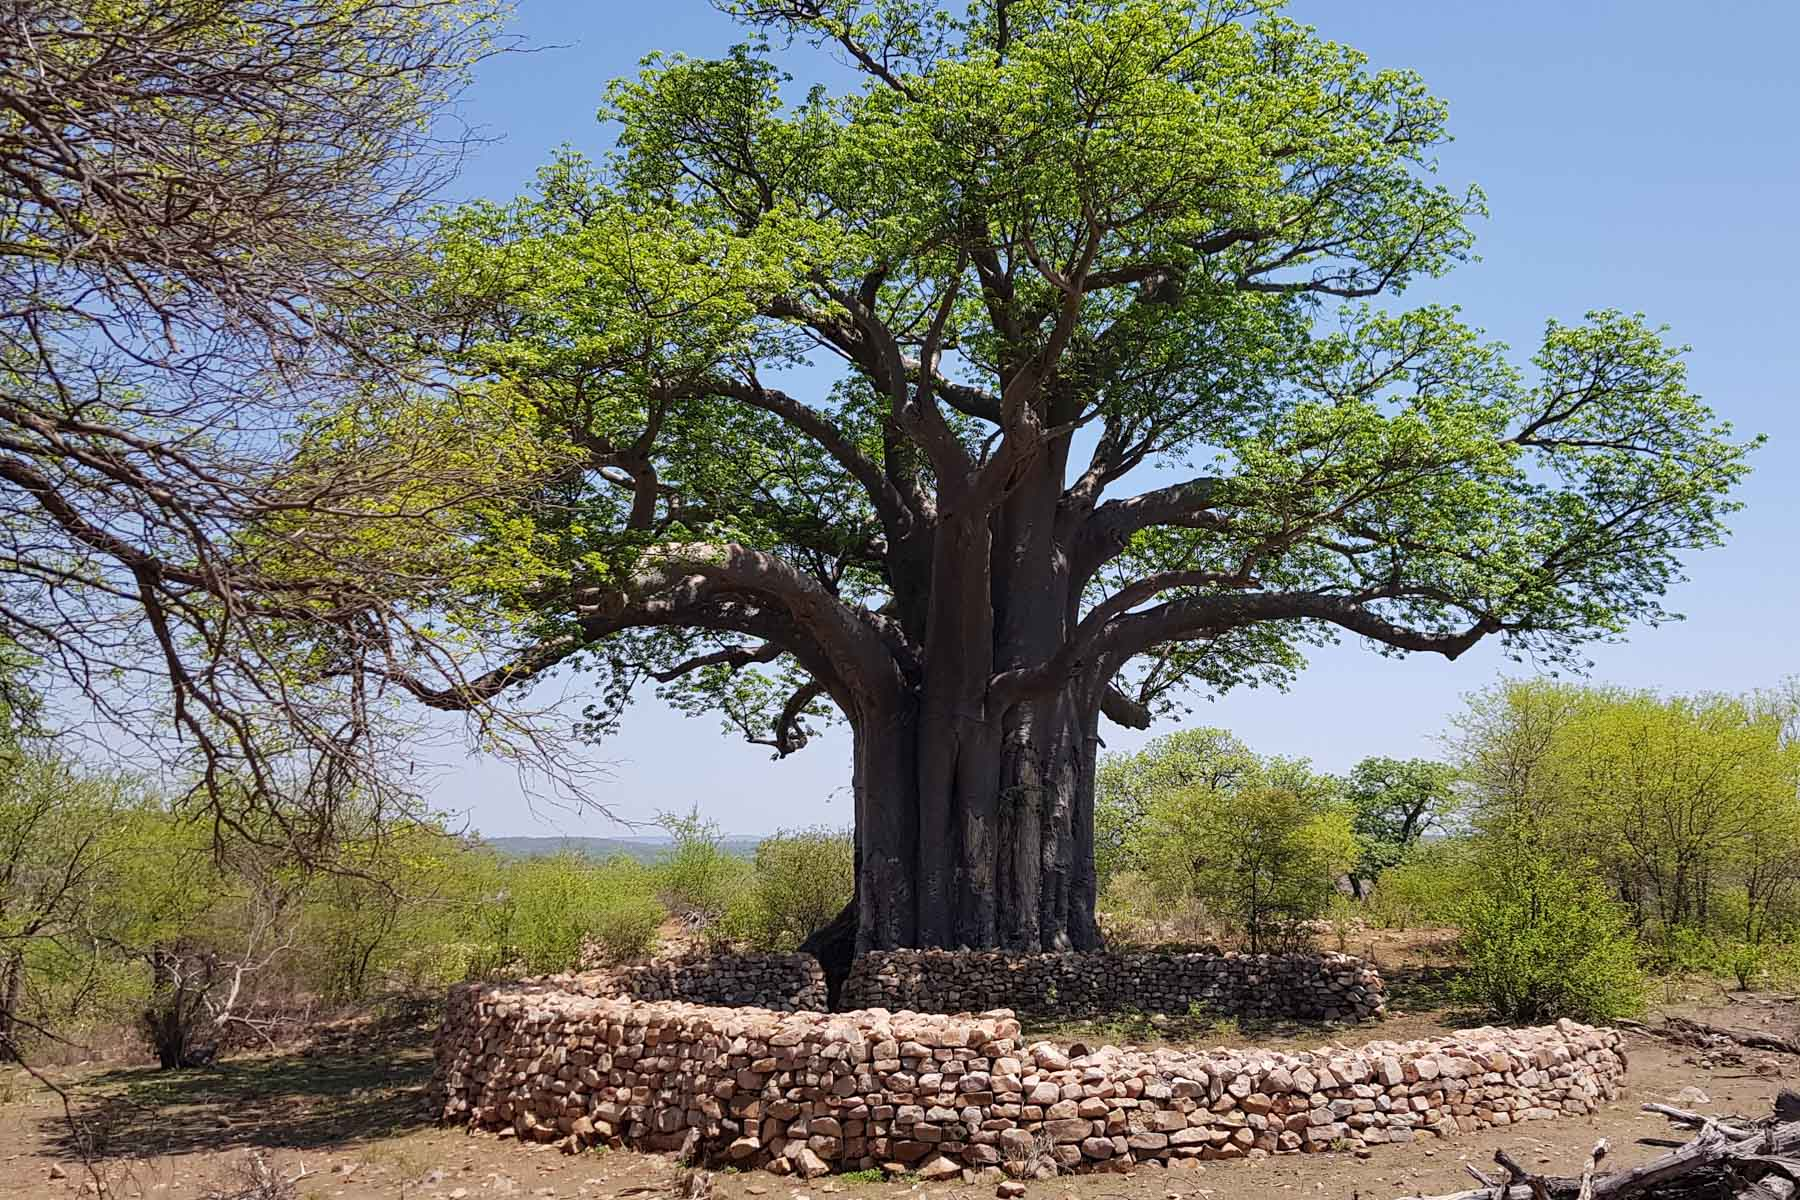 December 2019: The rock walls at Thulamela in the northern Kruger National Park, which dates back 800 years, have been reconstructed in recent times. (Photograph by Lynn Morris)